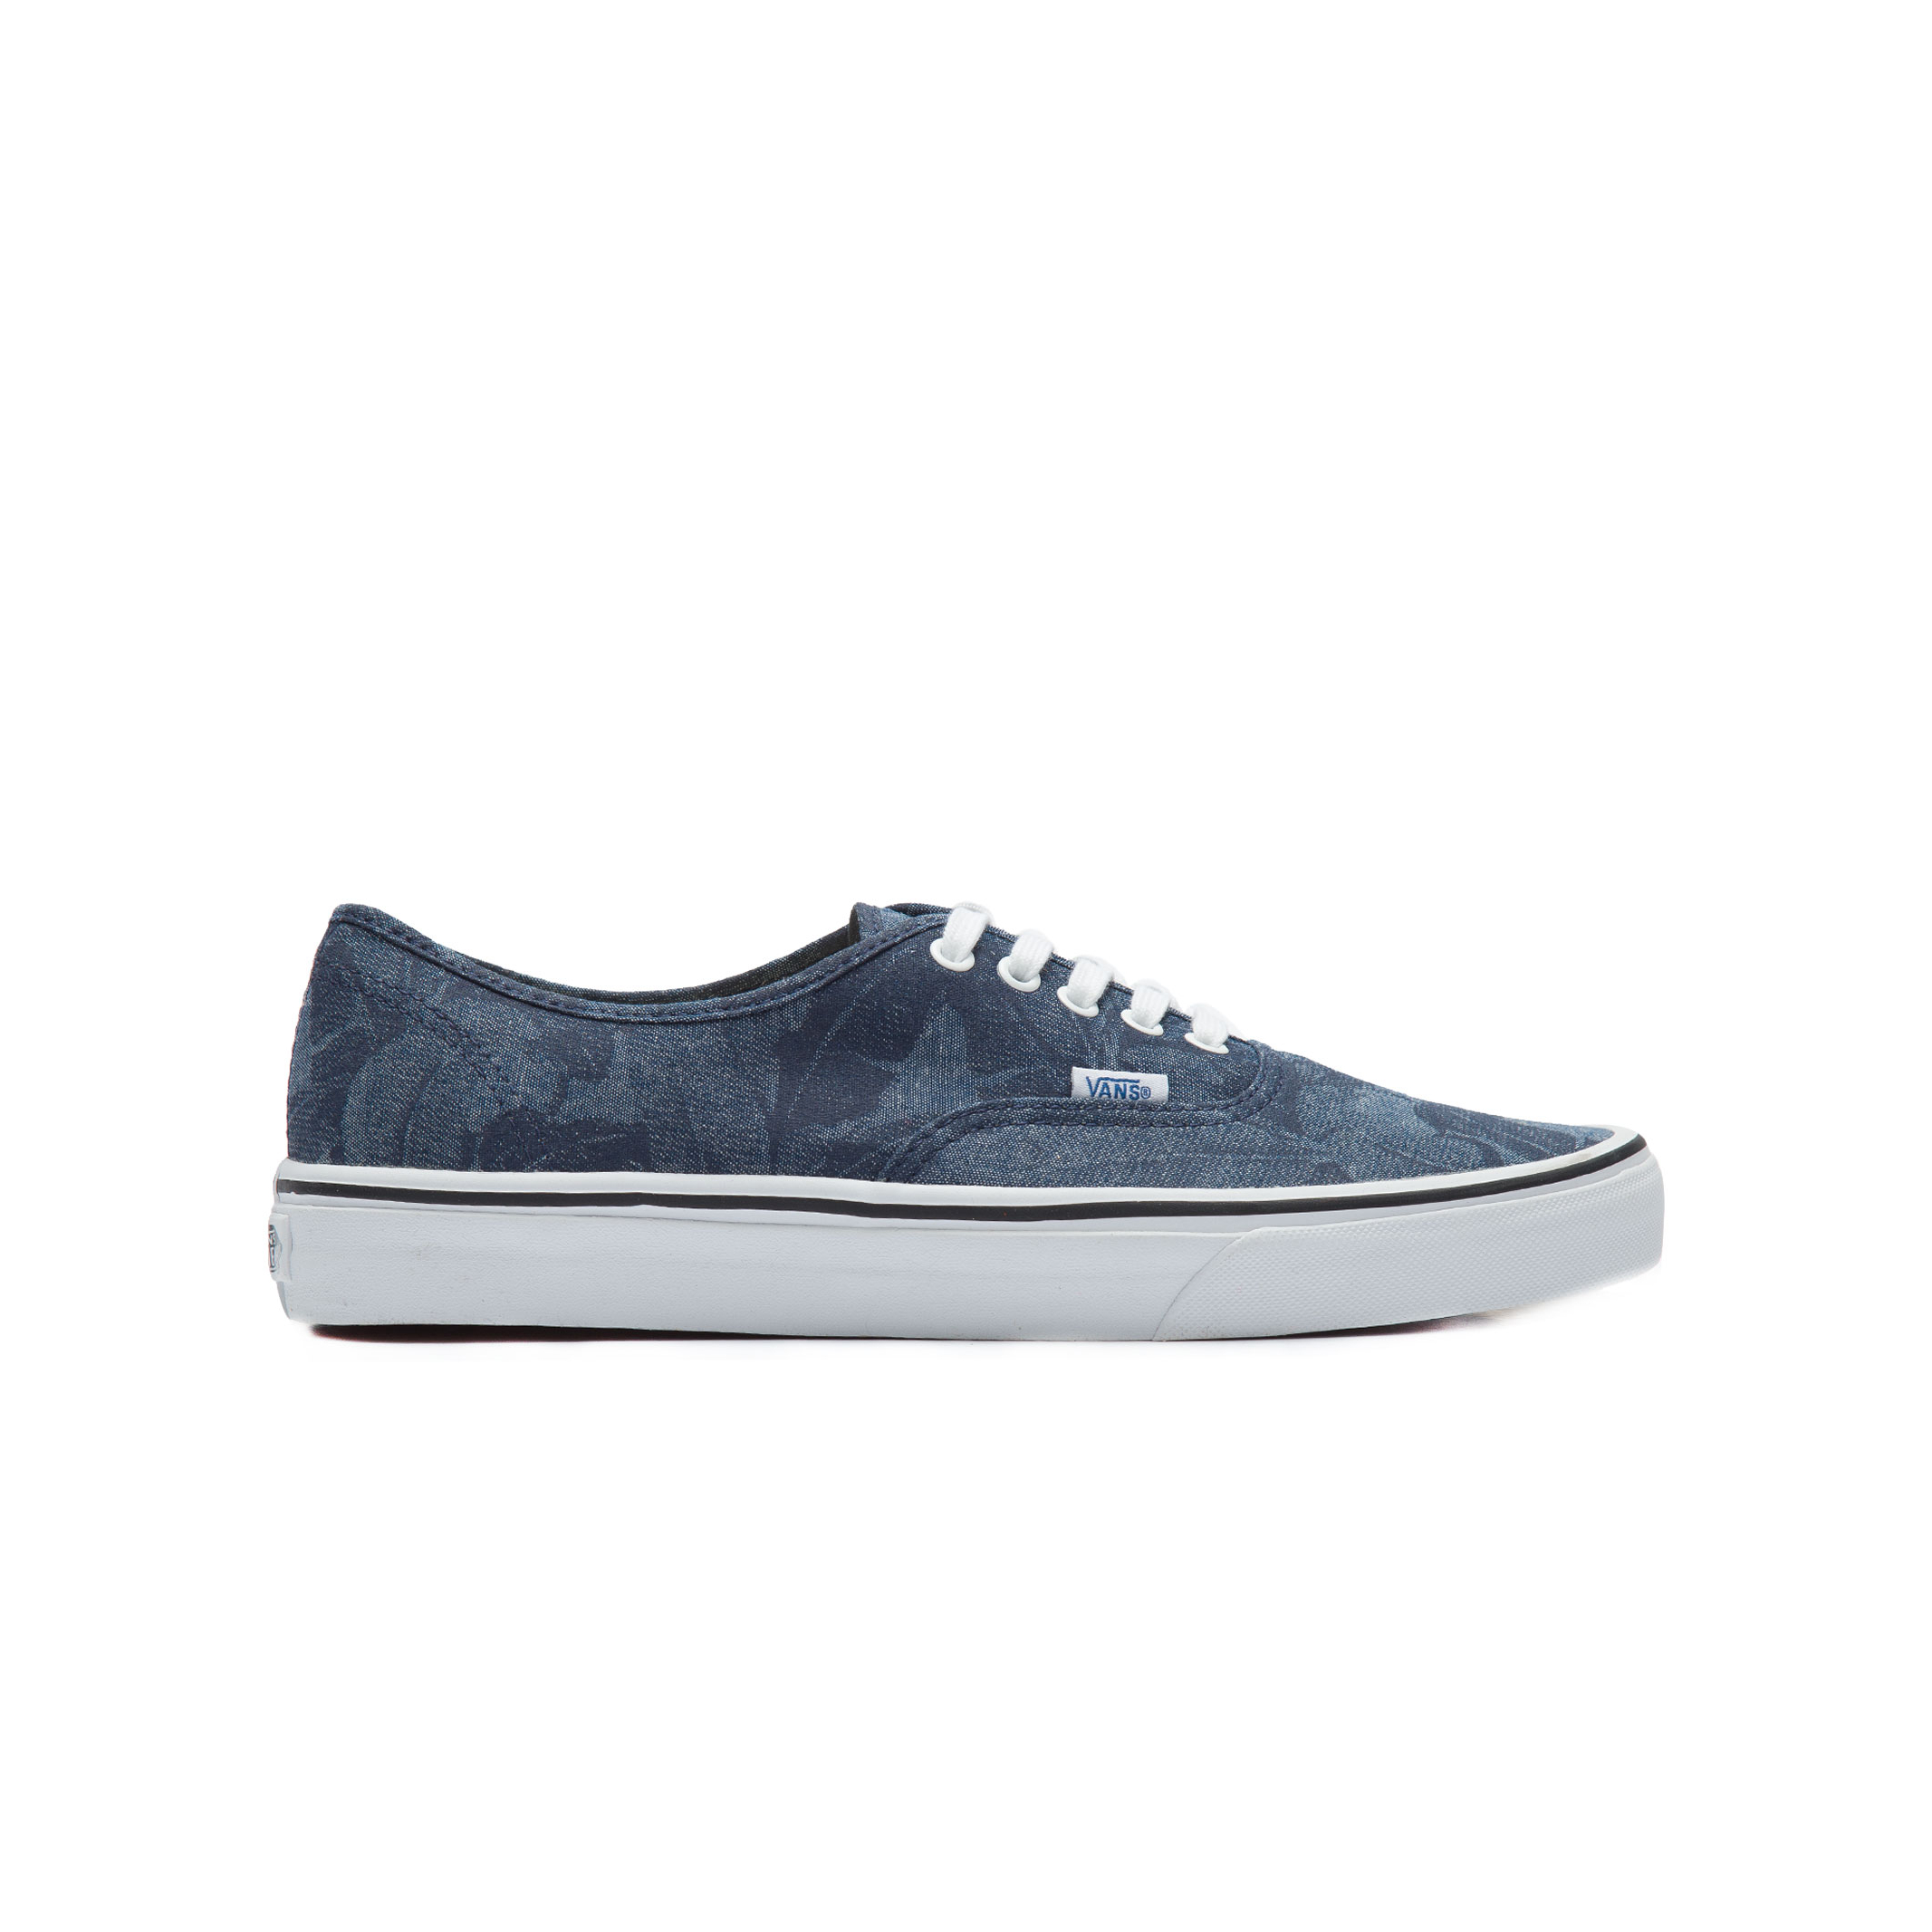 9ac728a1ae TÊnis Masculino U Authentic Chambray Leave - Azul